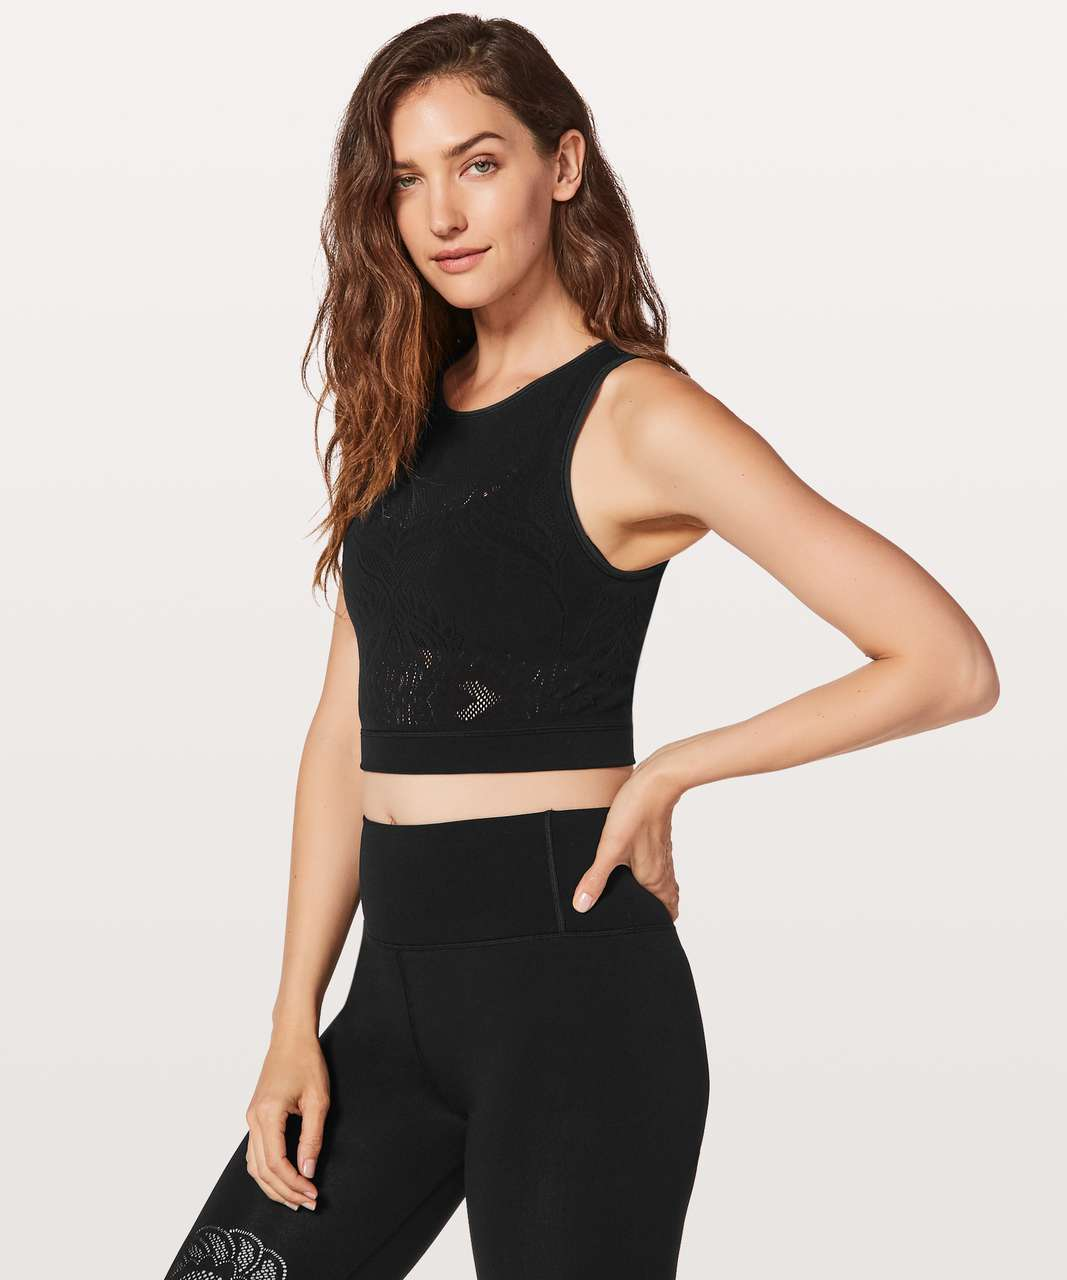 Lululemon Reveal Crop Top *Lattice Paisley - Black